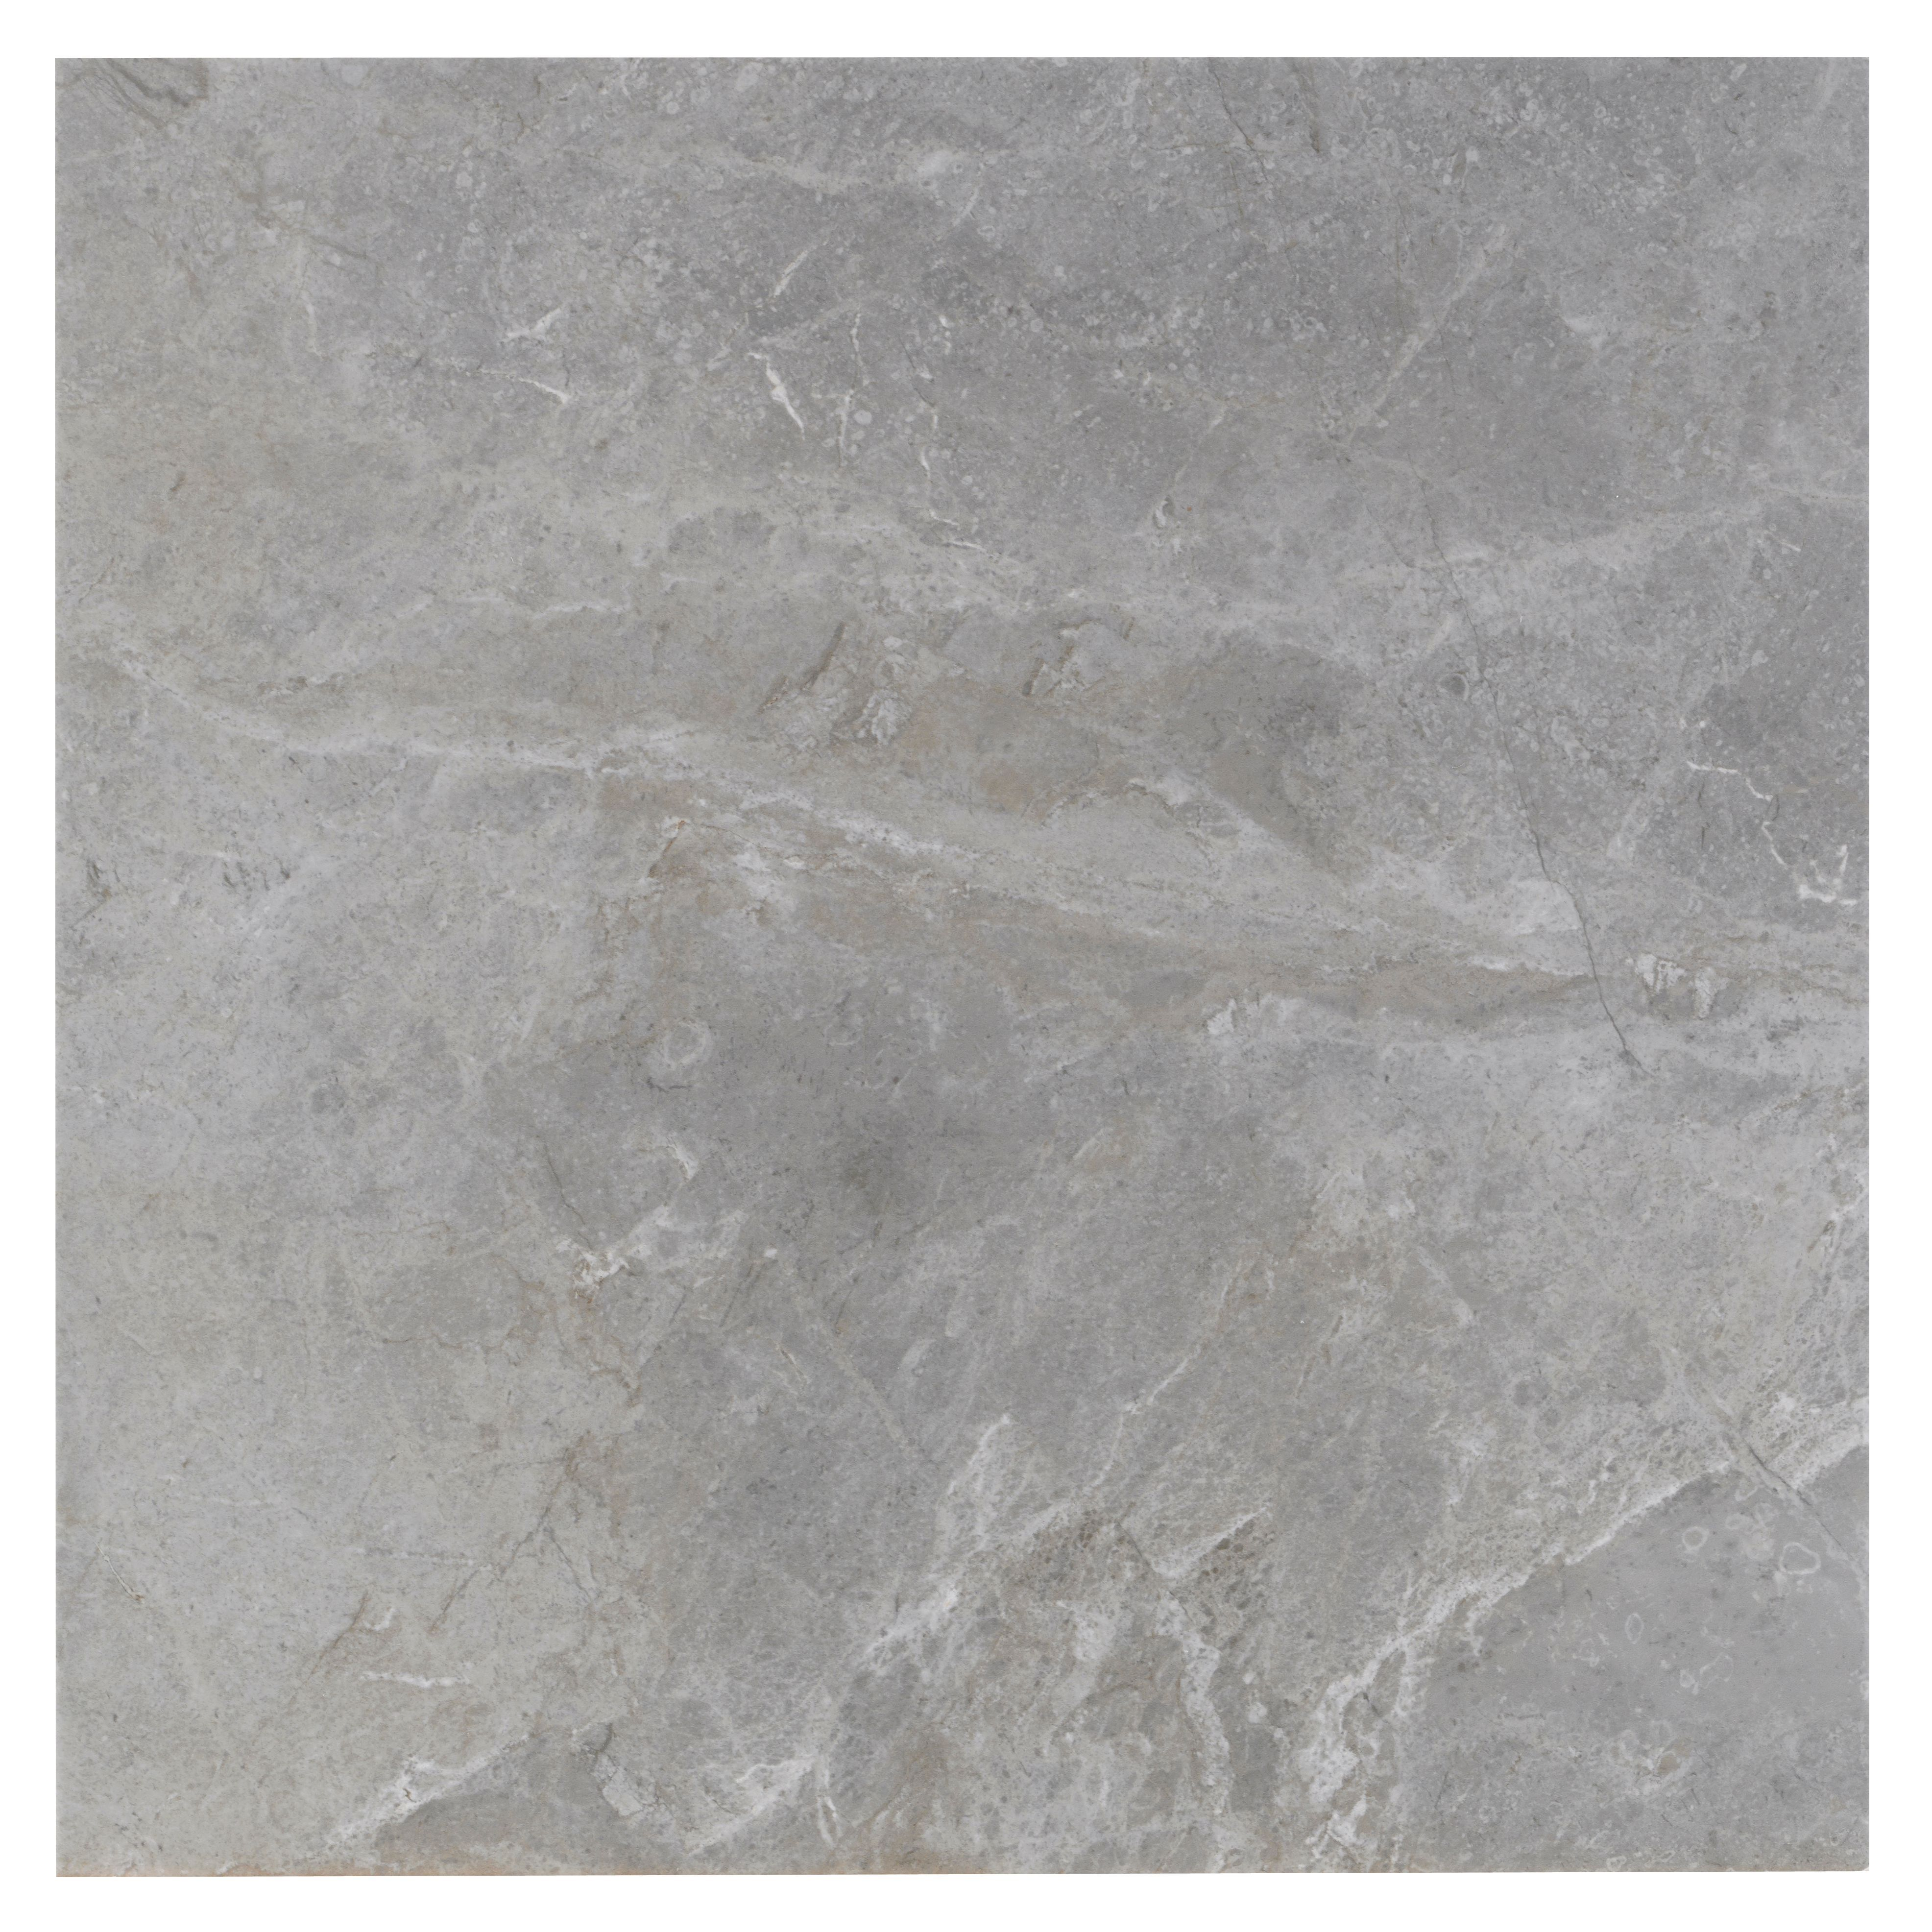 Urban Cement Grey Stone Effect Ceramic Wall Floor Tile: Burlington Limestone Pebble Riven Stone Effect Ceramic